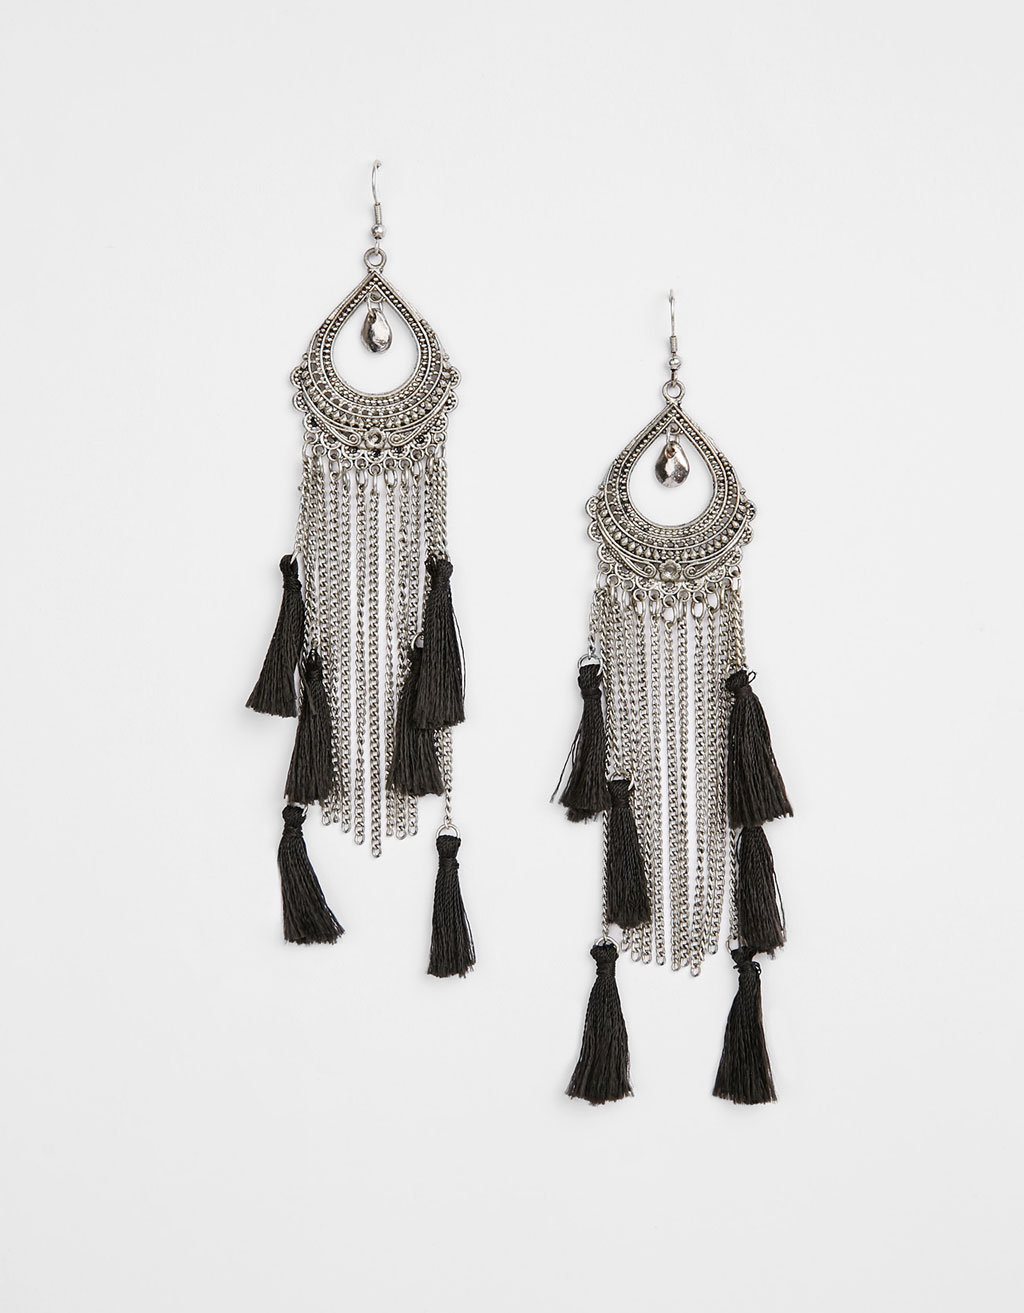 Long earrings with chains and tassels